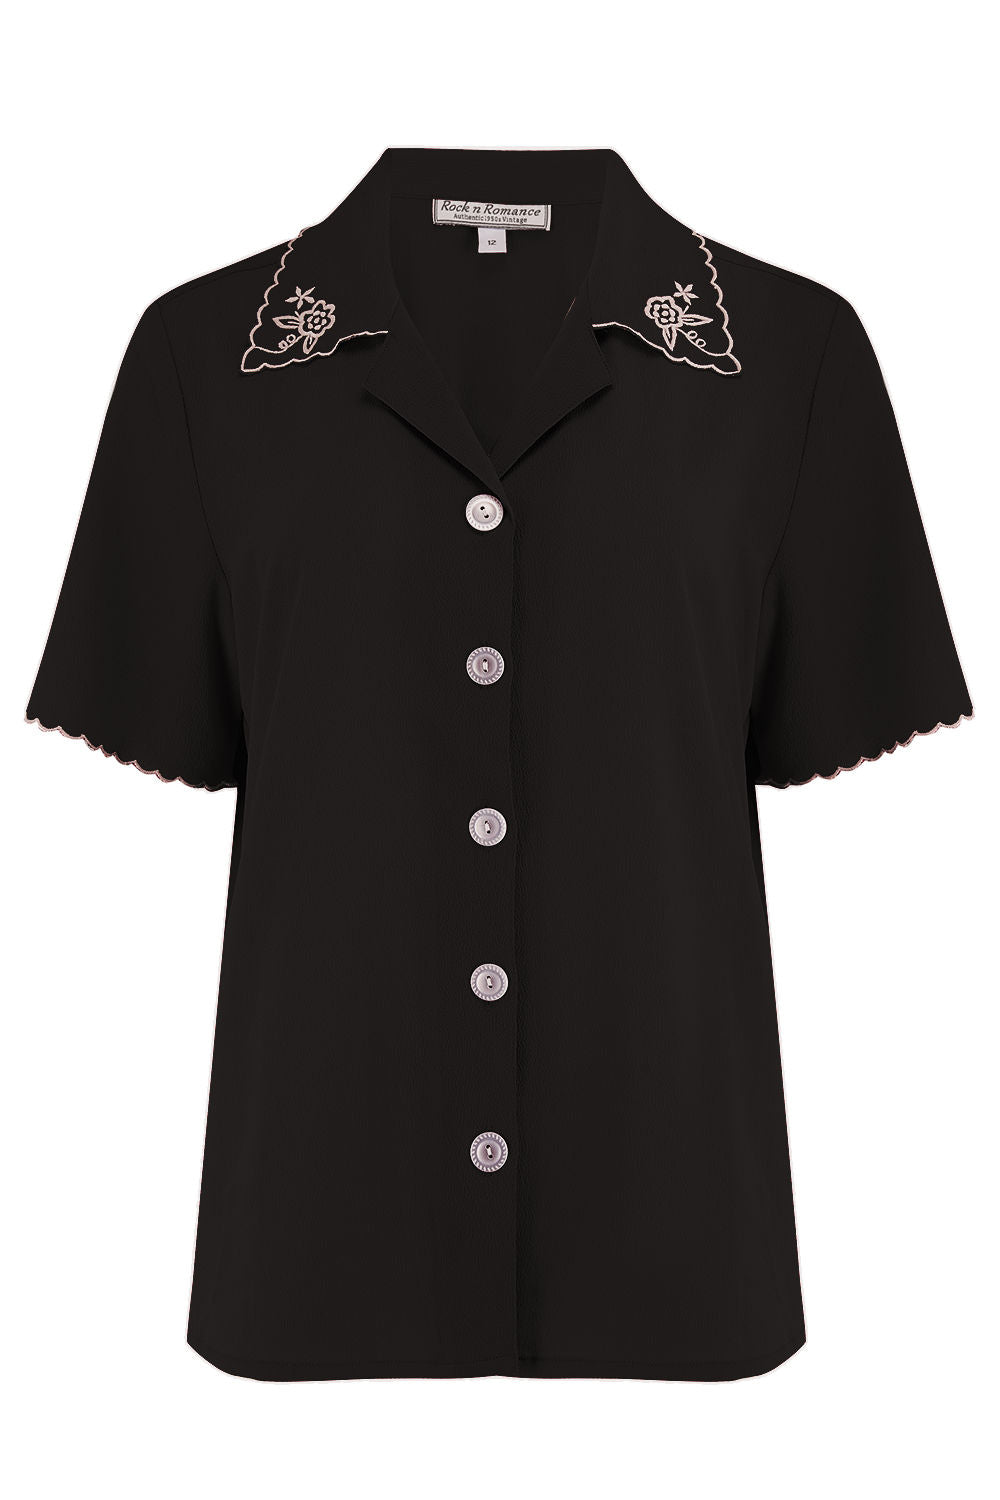 "Rock n Romance **Pre-Order** The ""Shirley"" Embroidered Blouse in Black, Stunning True Vintage Style - RocknRomance Clothing"